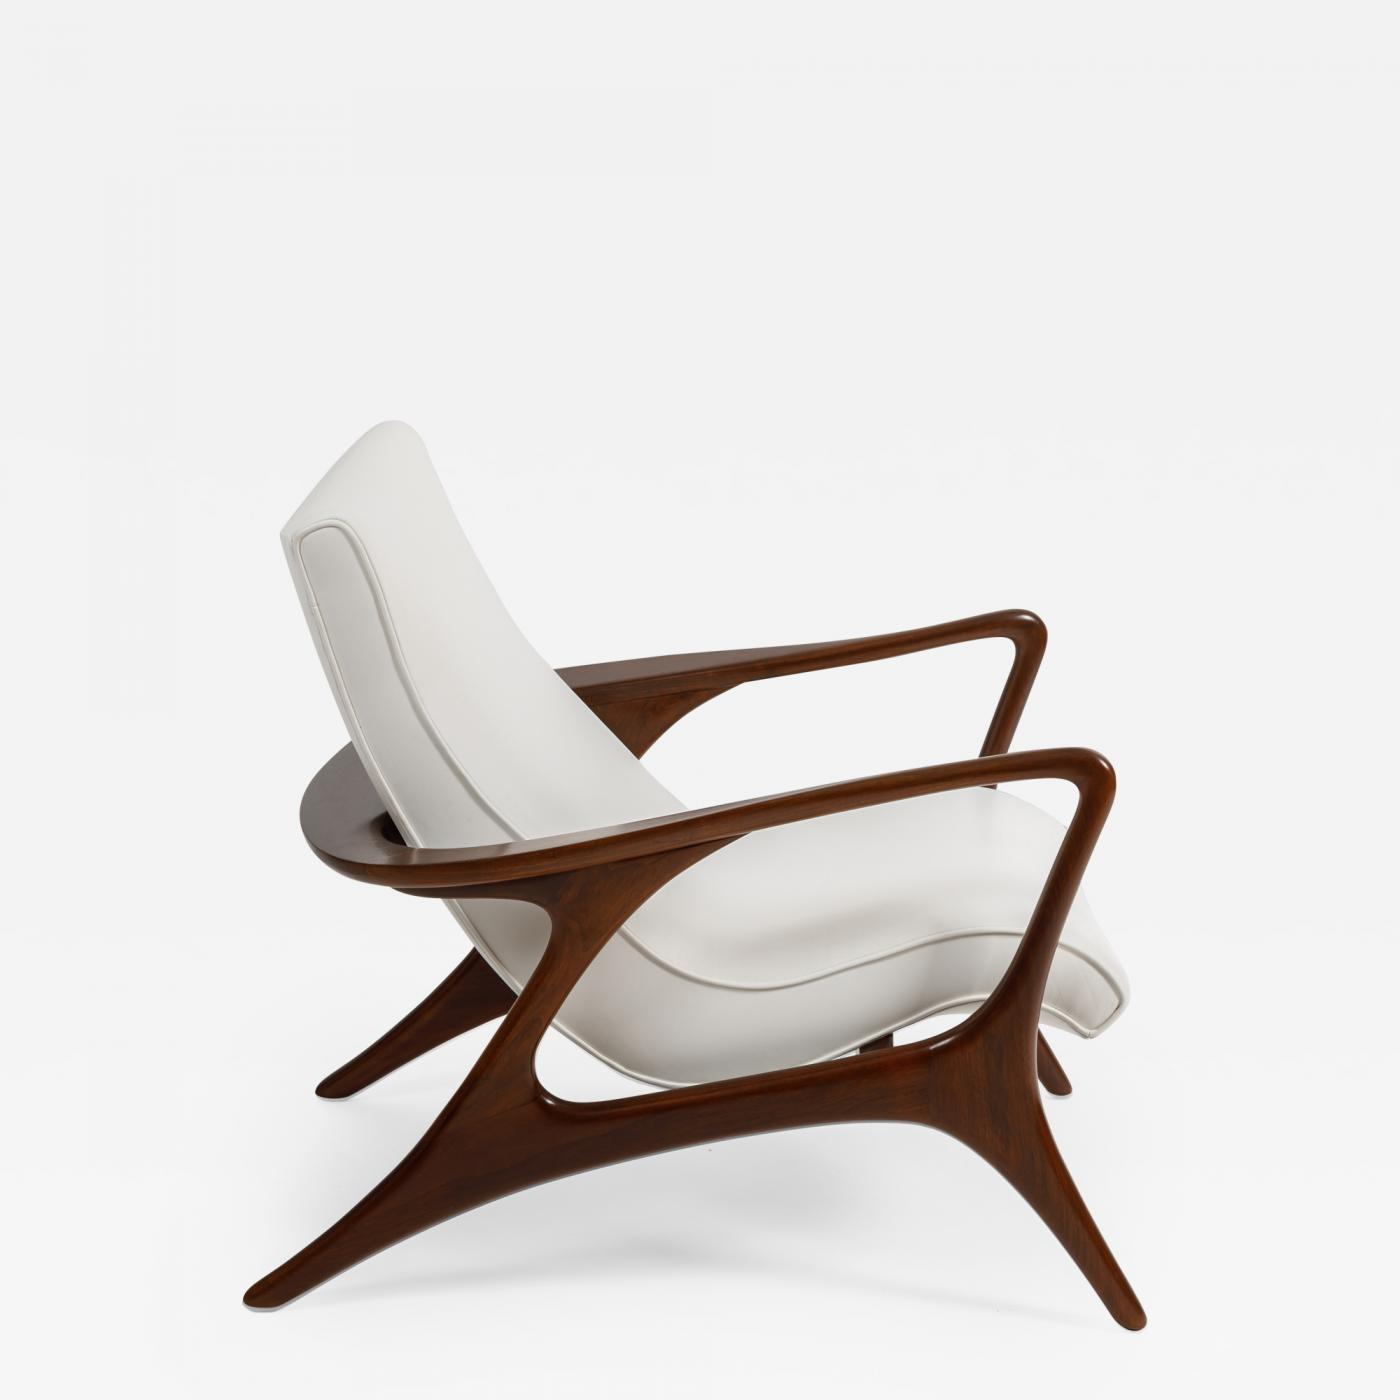 Contour Chair Lounge Vladimir Kagan Early